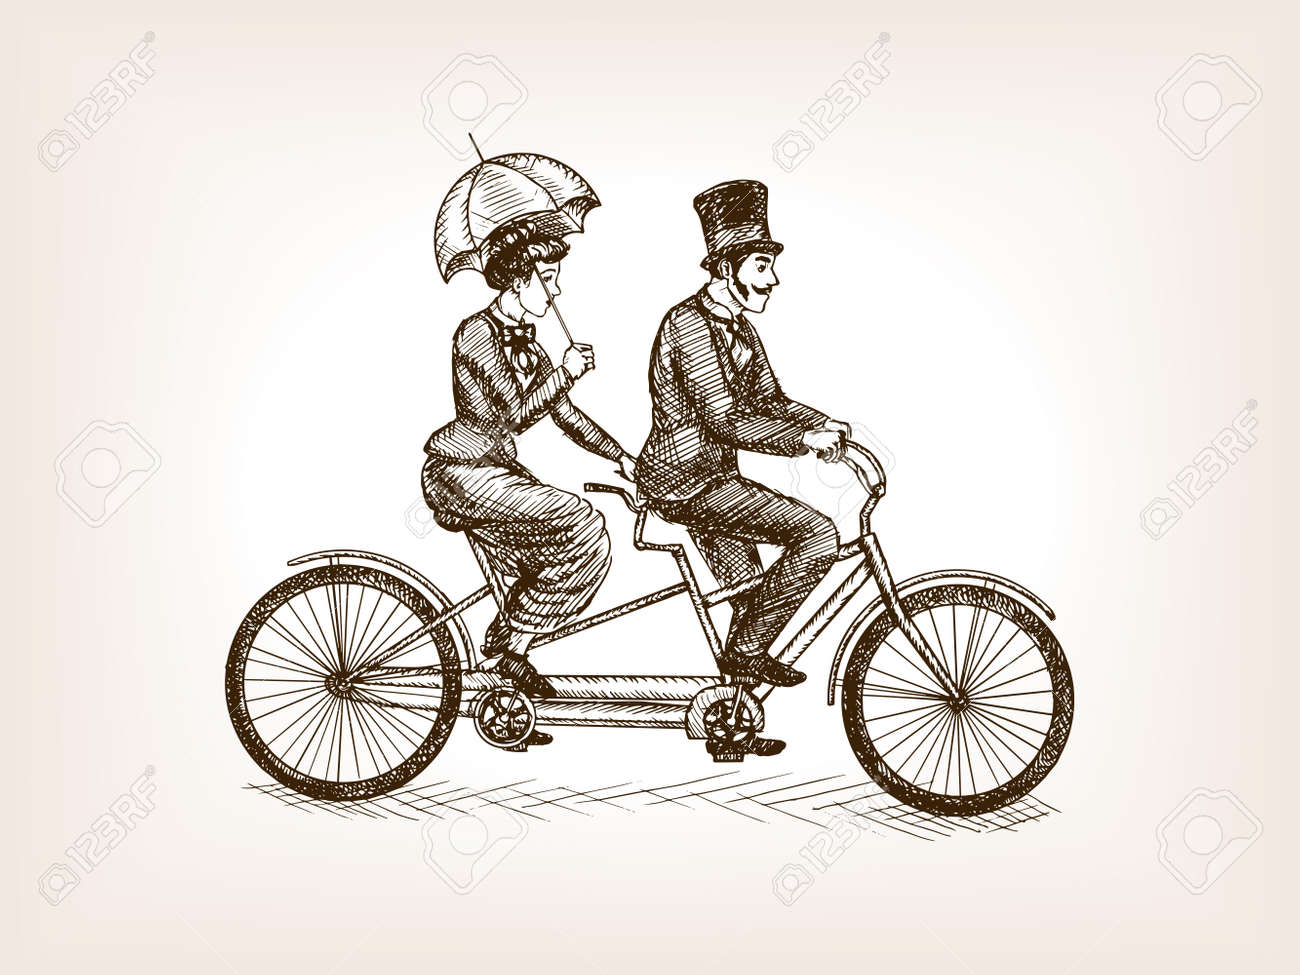 Vintage Lady And Gentleman Ride Tandem Bicycle Sketch Style Vector Illustration Old Engraving Imitation